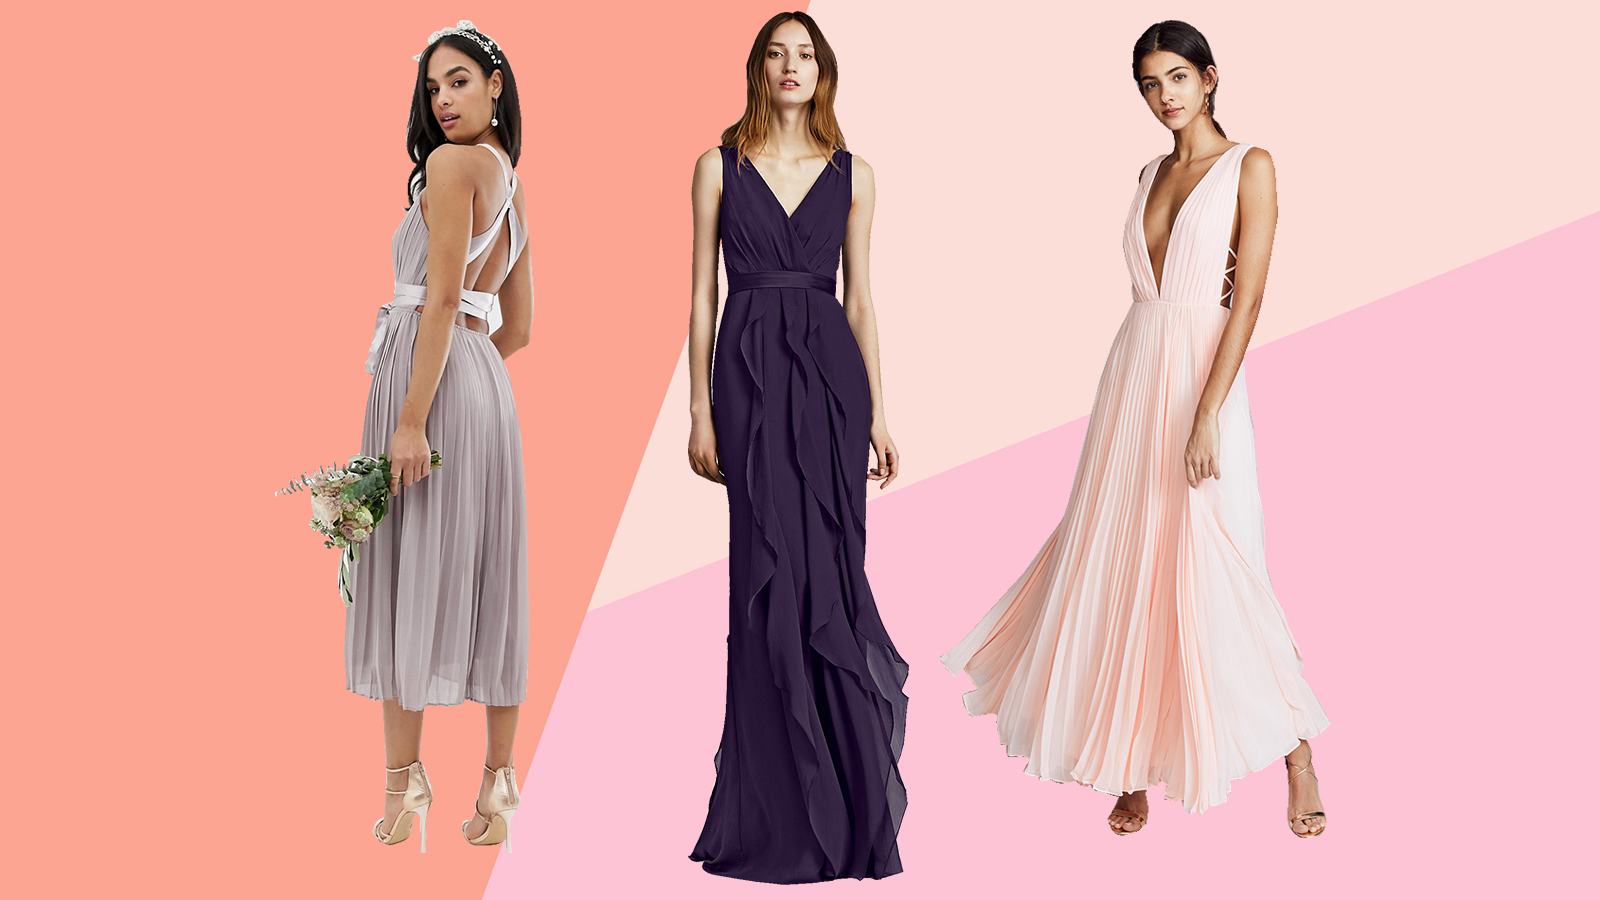 7853325fc8a Tout  Where to Buy Bridesmaids Dresses Online That Your Bridal Party Will  Adore